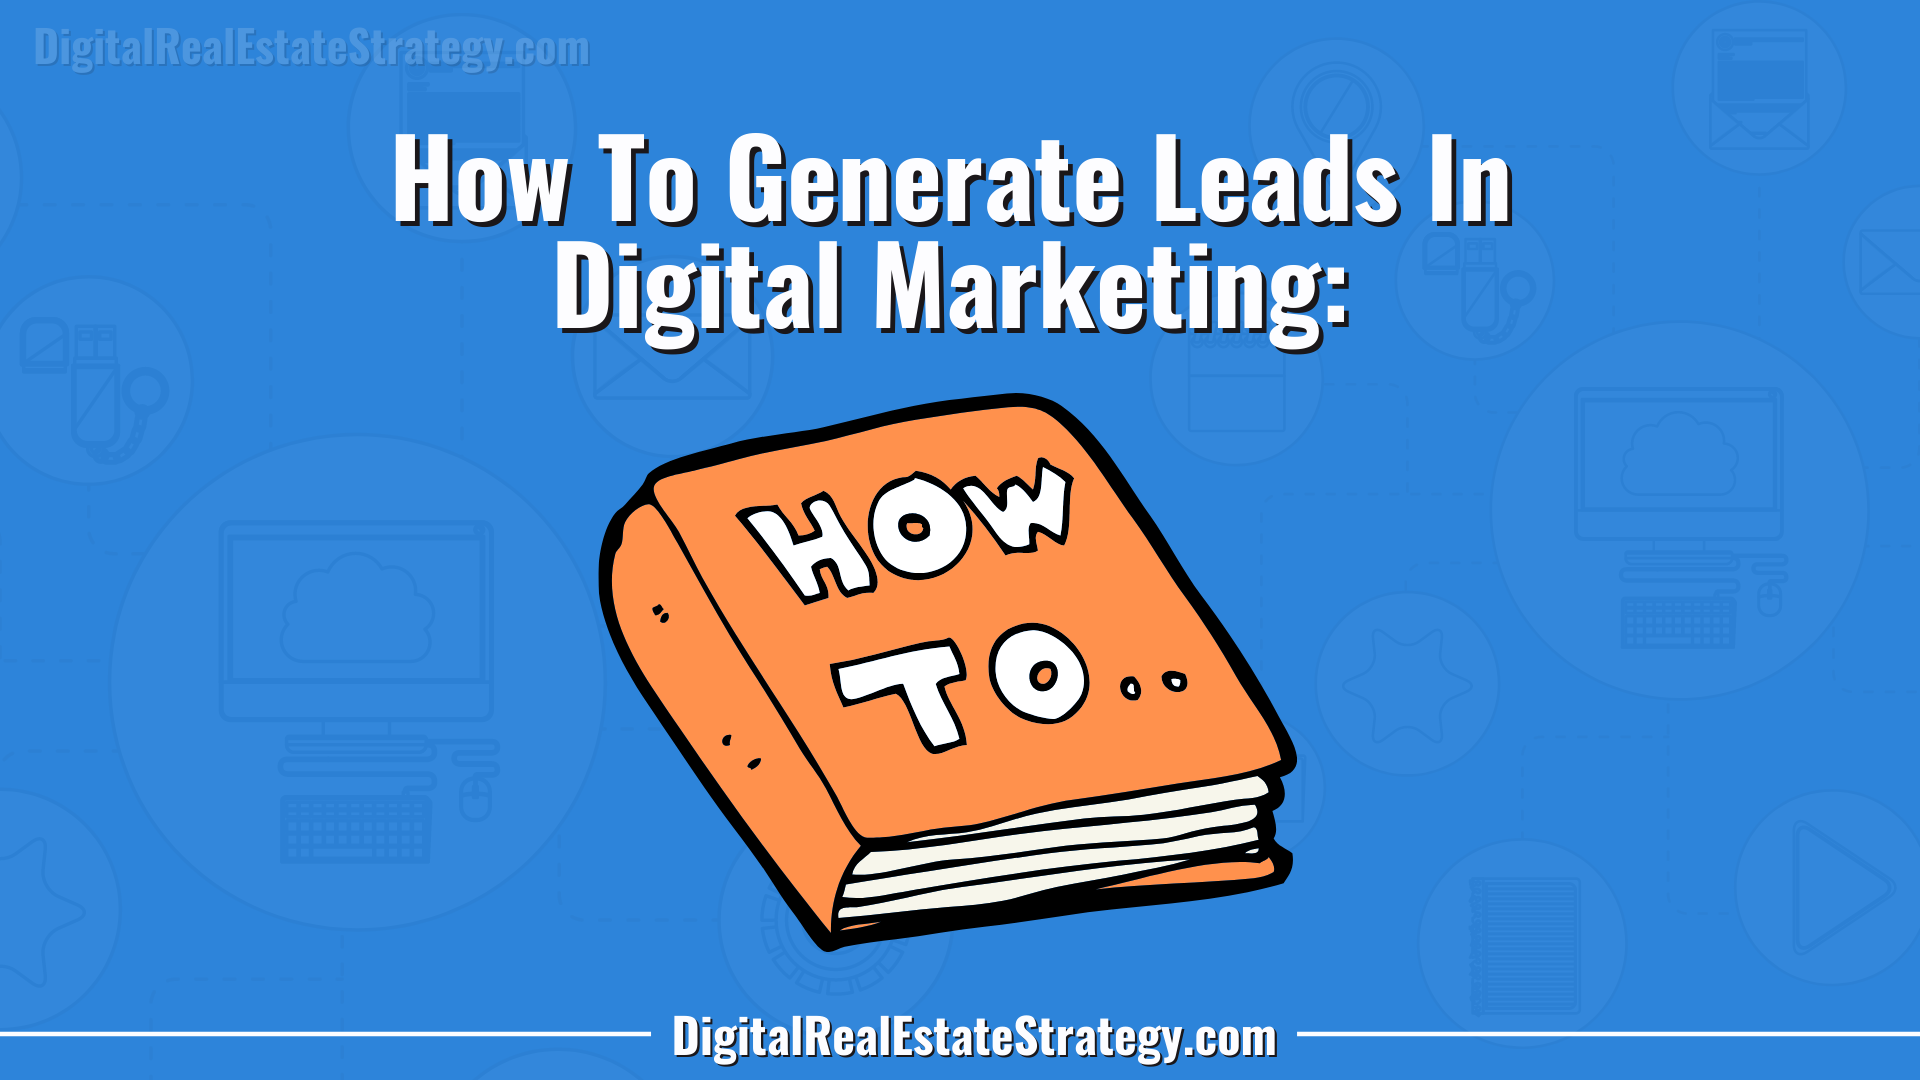 erome Lewis Generate Leads For Your Business Online Sell Online Stuff Memberships Subscriptions Affiliate Marketing Digital Real Estate Strategy Using Digital Marketing